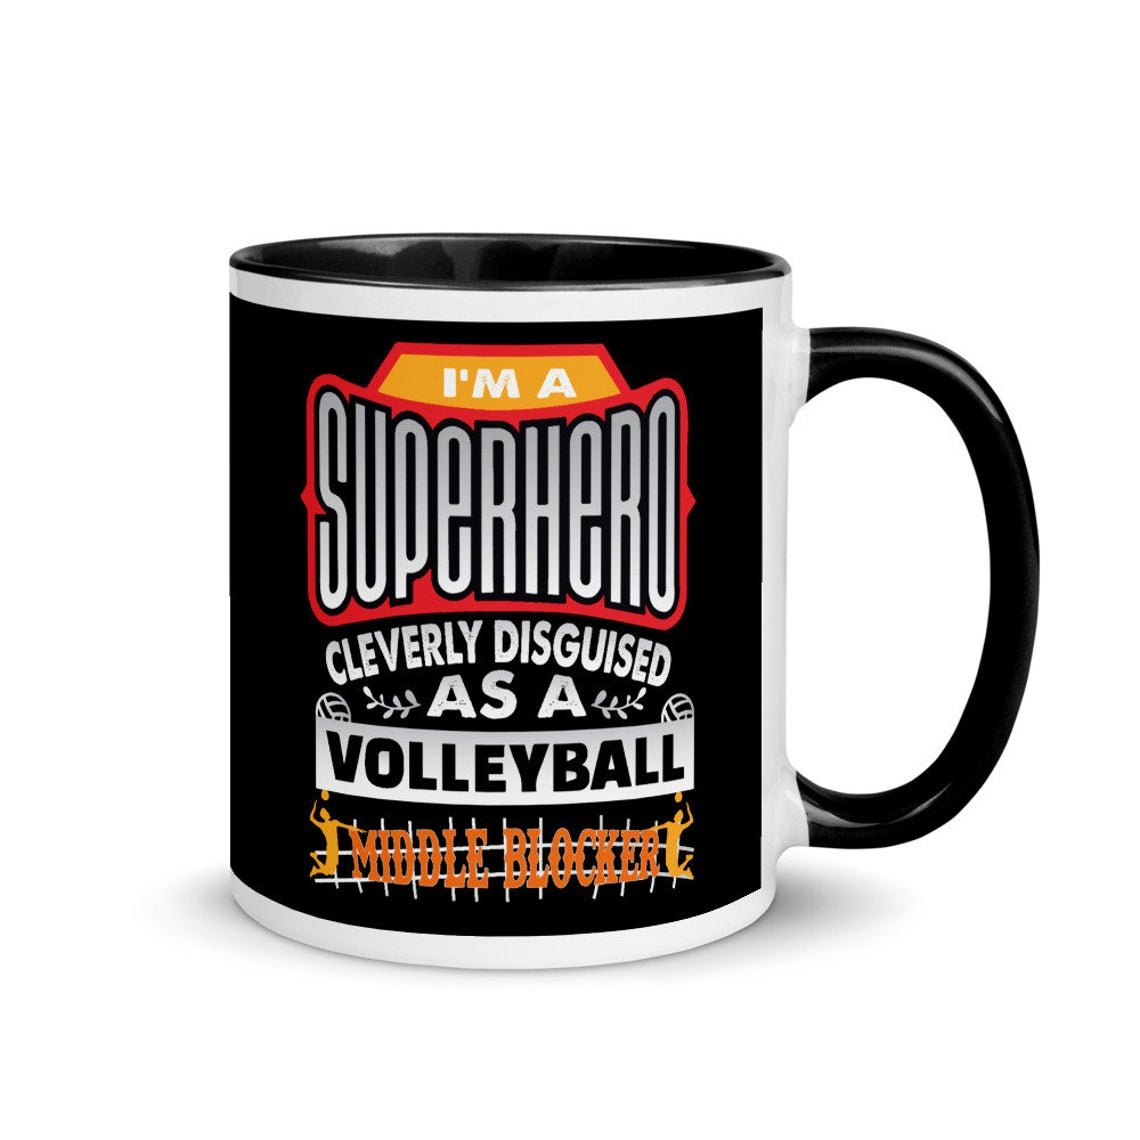 My Volleybragswag volleyabll mug collection includes mugs for hitters, liberos, blockers and coaches as well as the VBS Beast Collection featuring animal players.